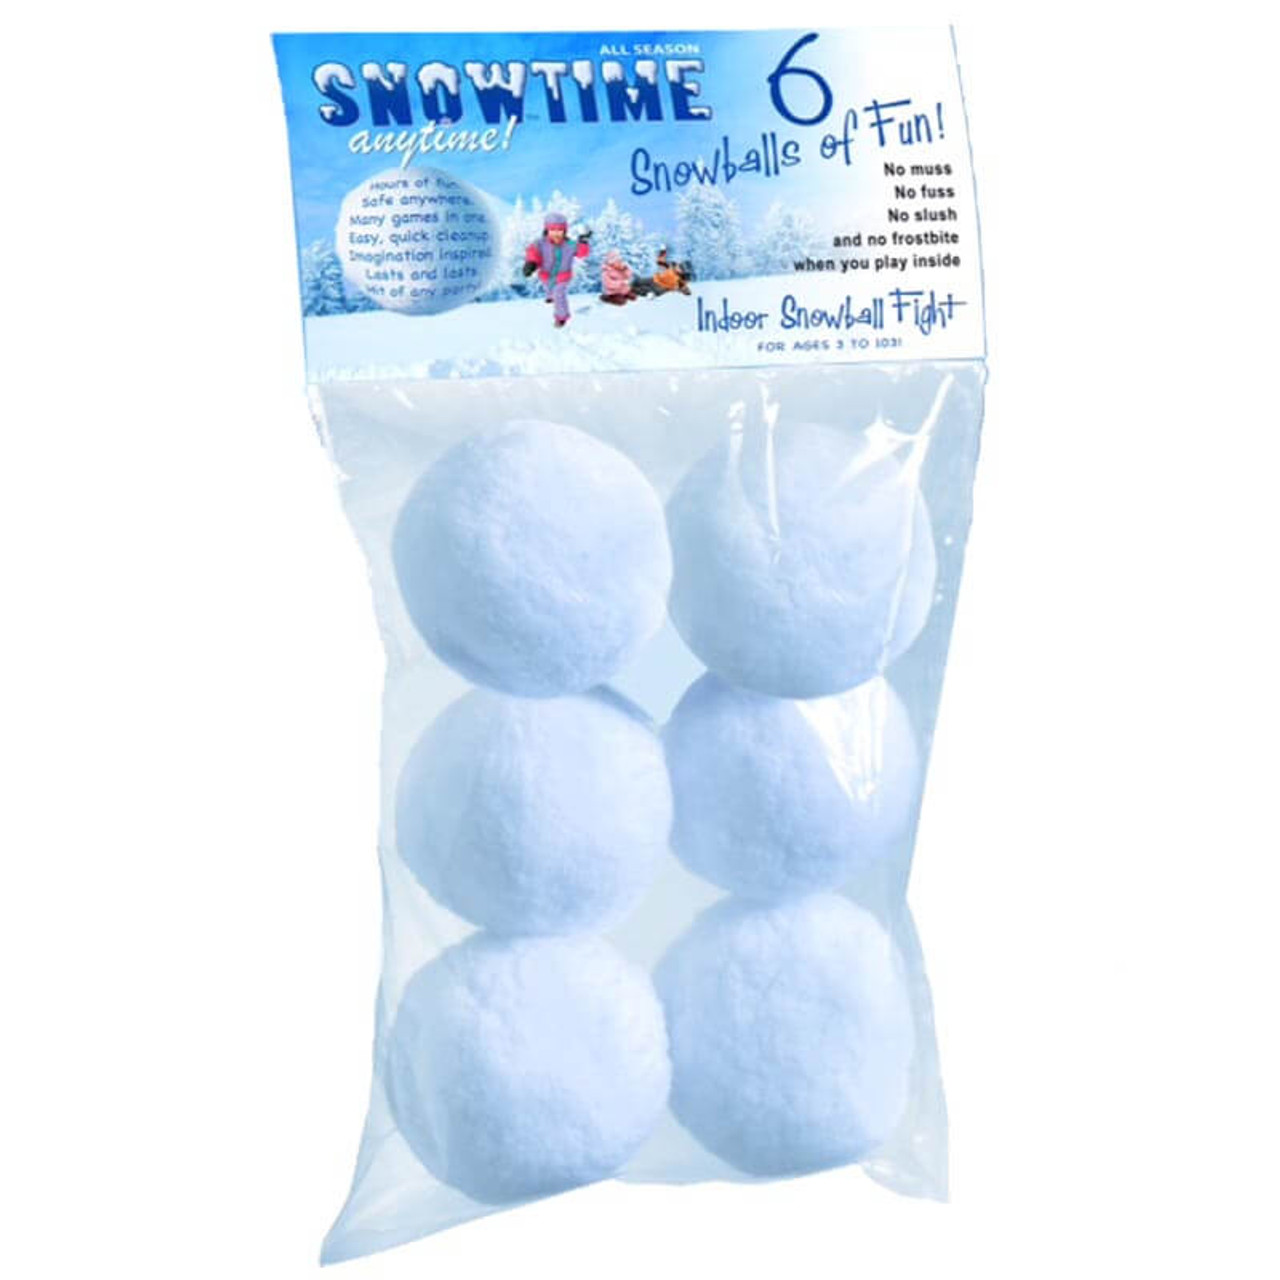 SNOWTIME ANYTIME INDOOR SNOWBALLS